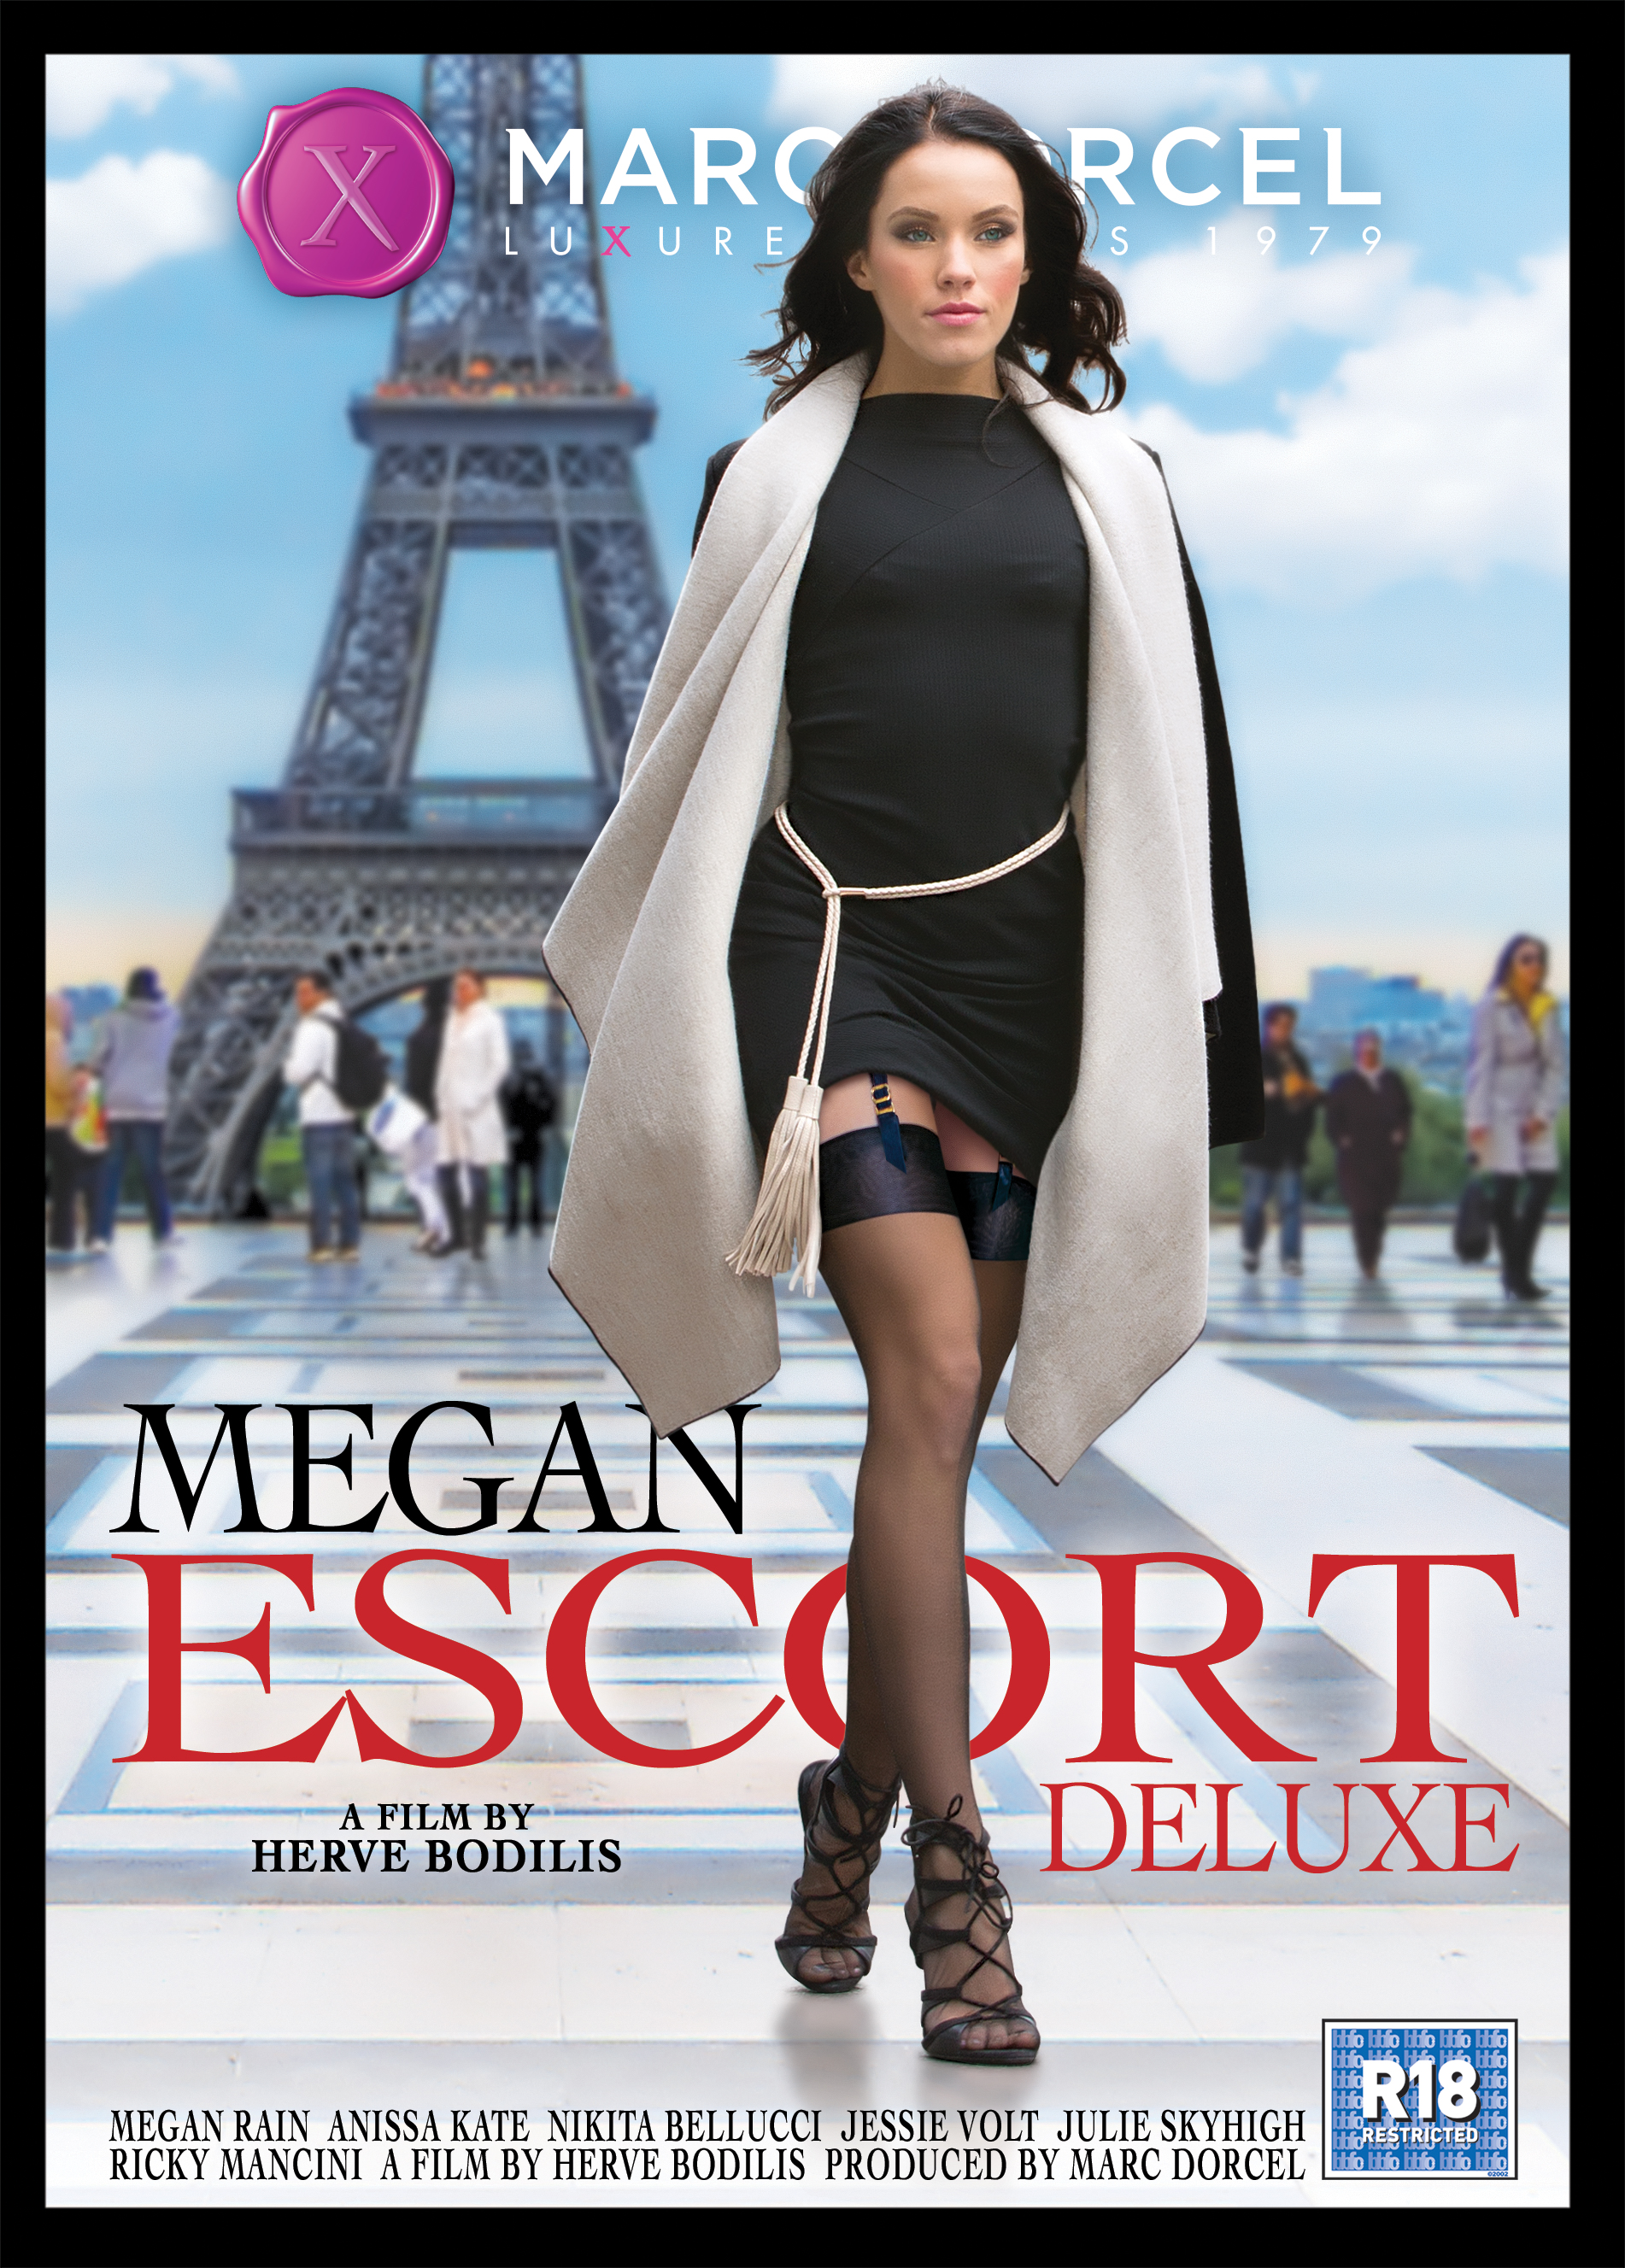 Megan, Escorte de Luxe